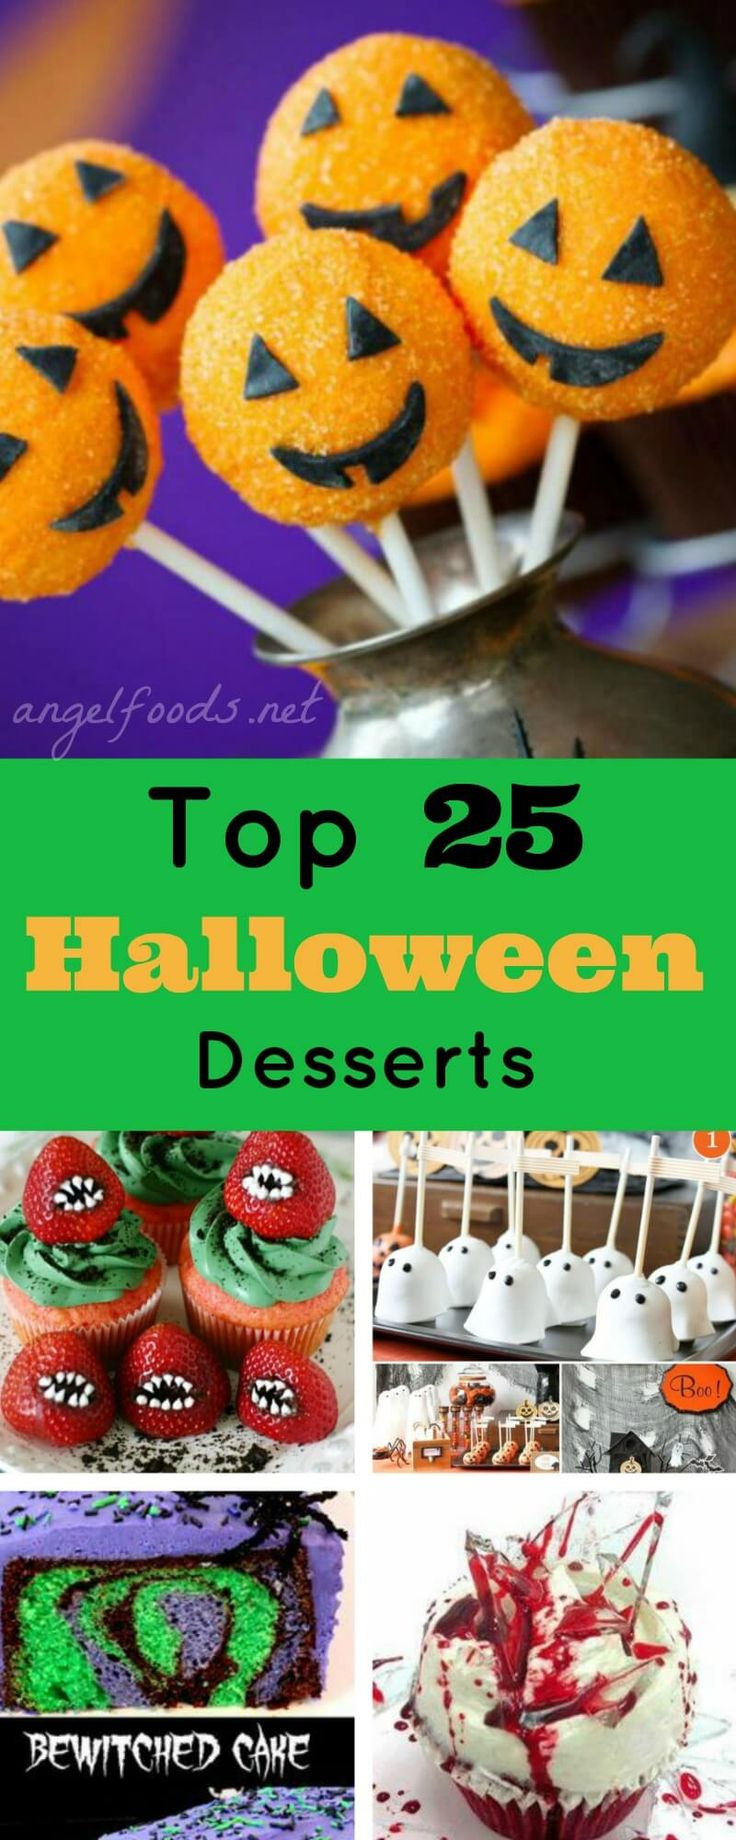 top 25 halloween desserts - Gourmet Halloween Recipes